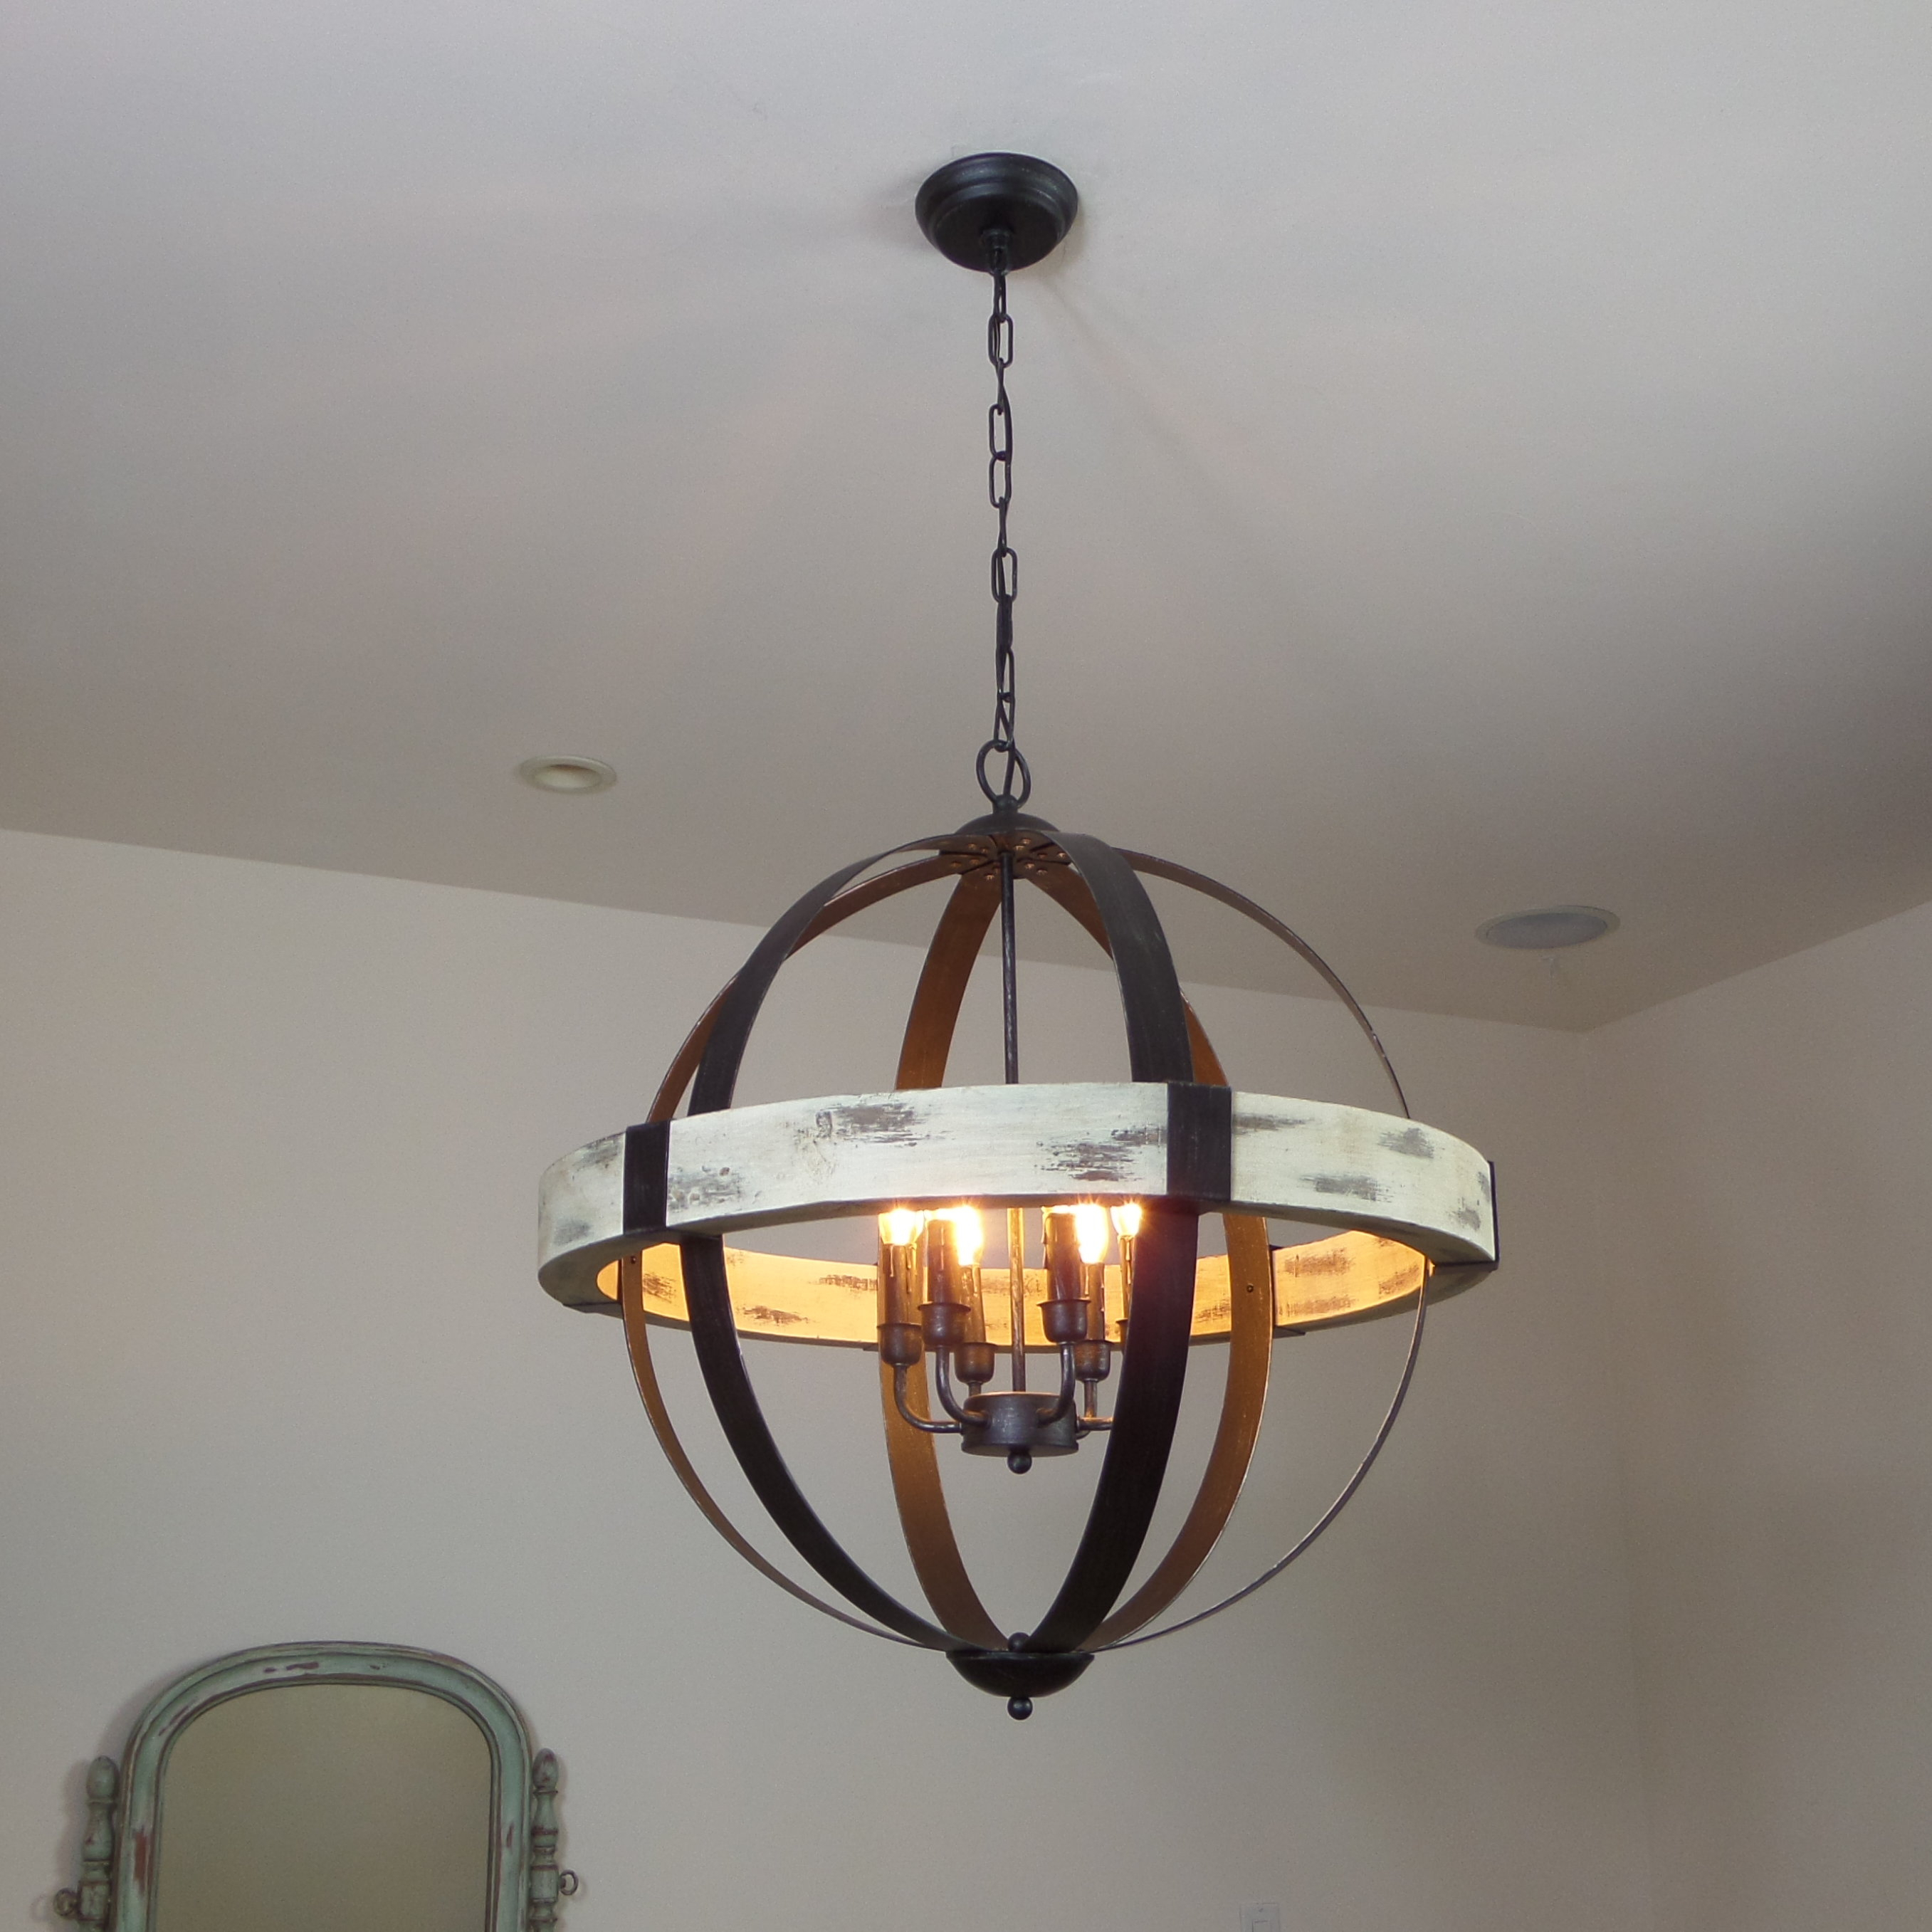 Cannella 6-Light Globe Chandelier intended for Donna 6-Light Globe Chandeliers (Image 3 of 30)